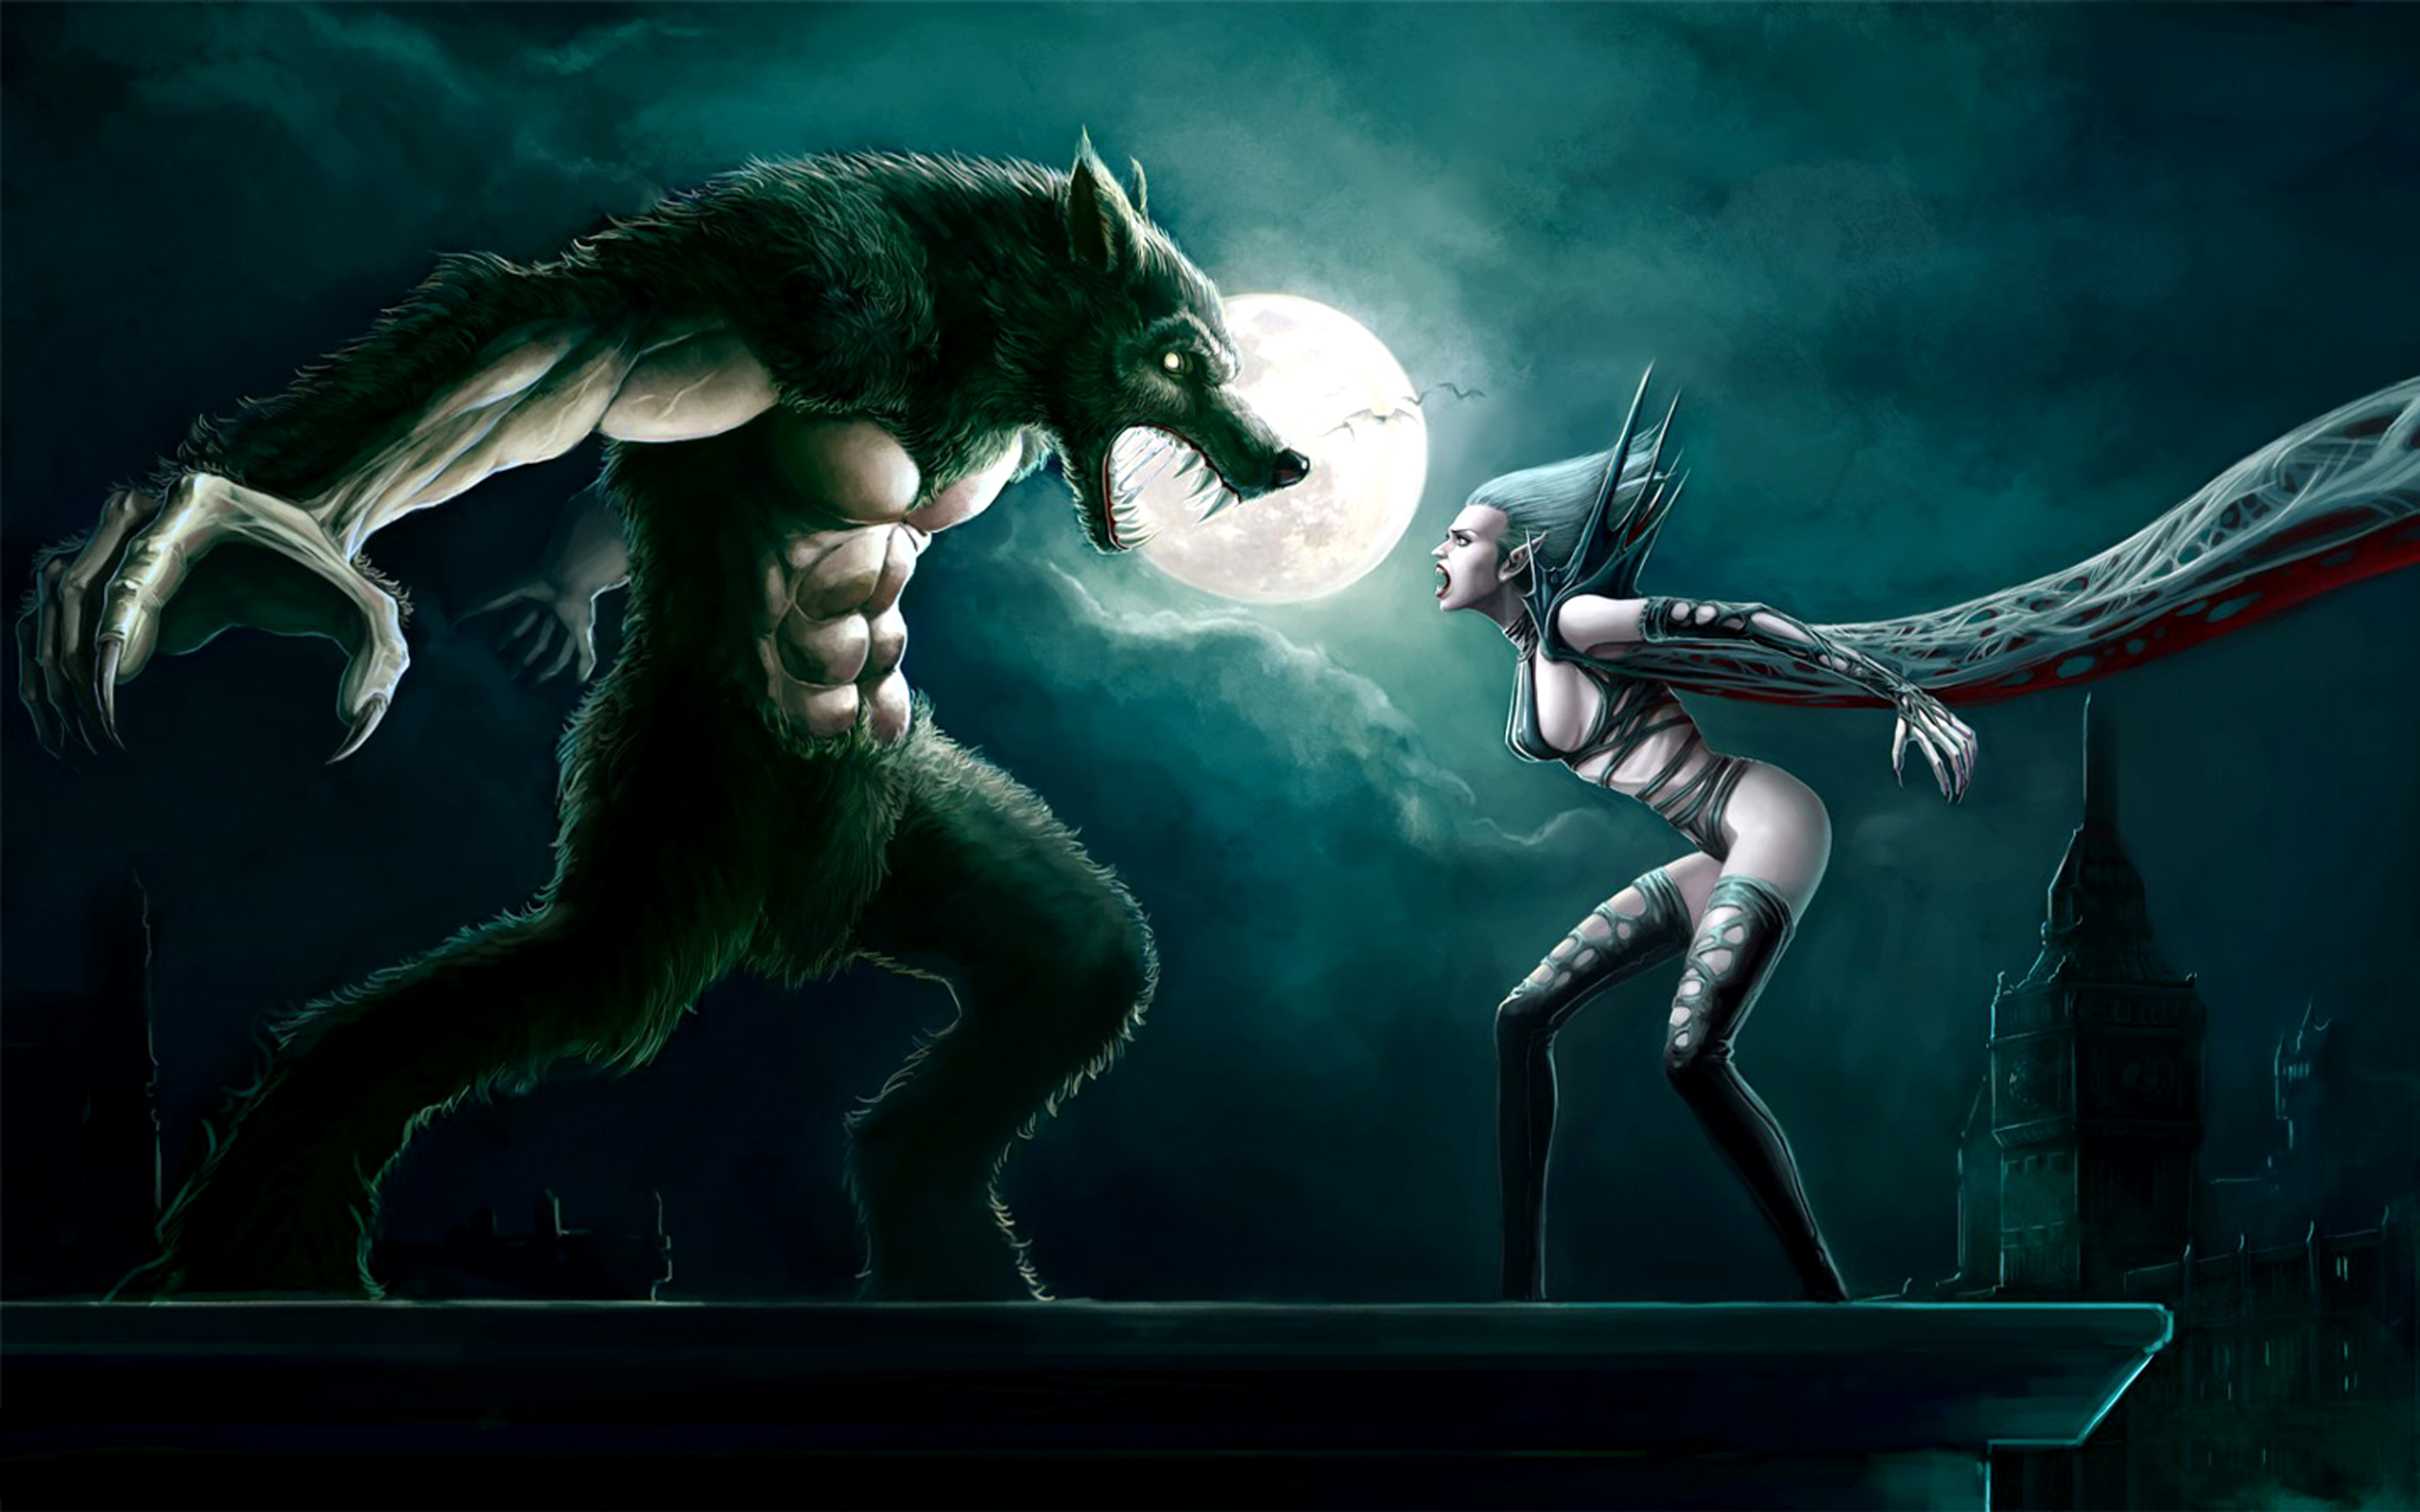 Donker - Battle  Vampier Werewolf Woman Wallpaper